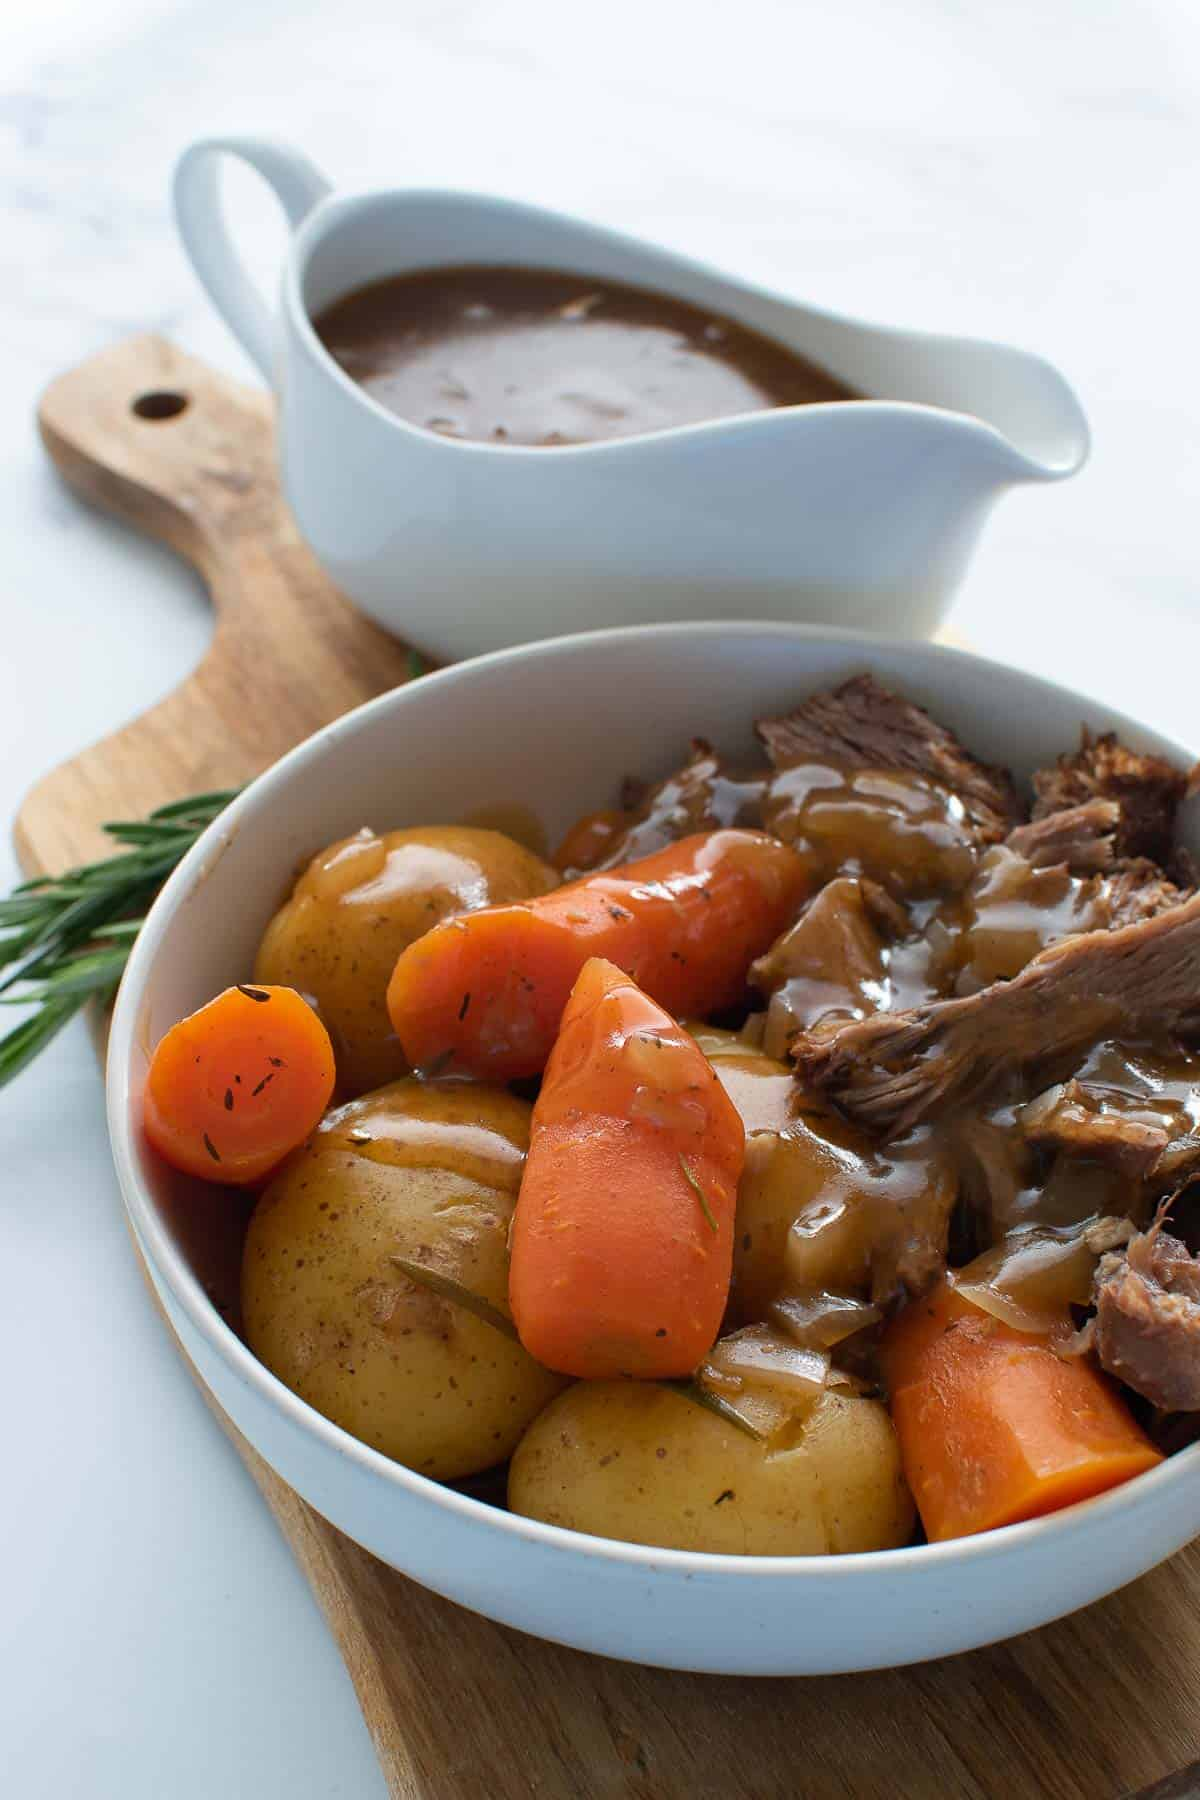 Beef, potatoes and carrots with gravy in a bowl.